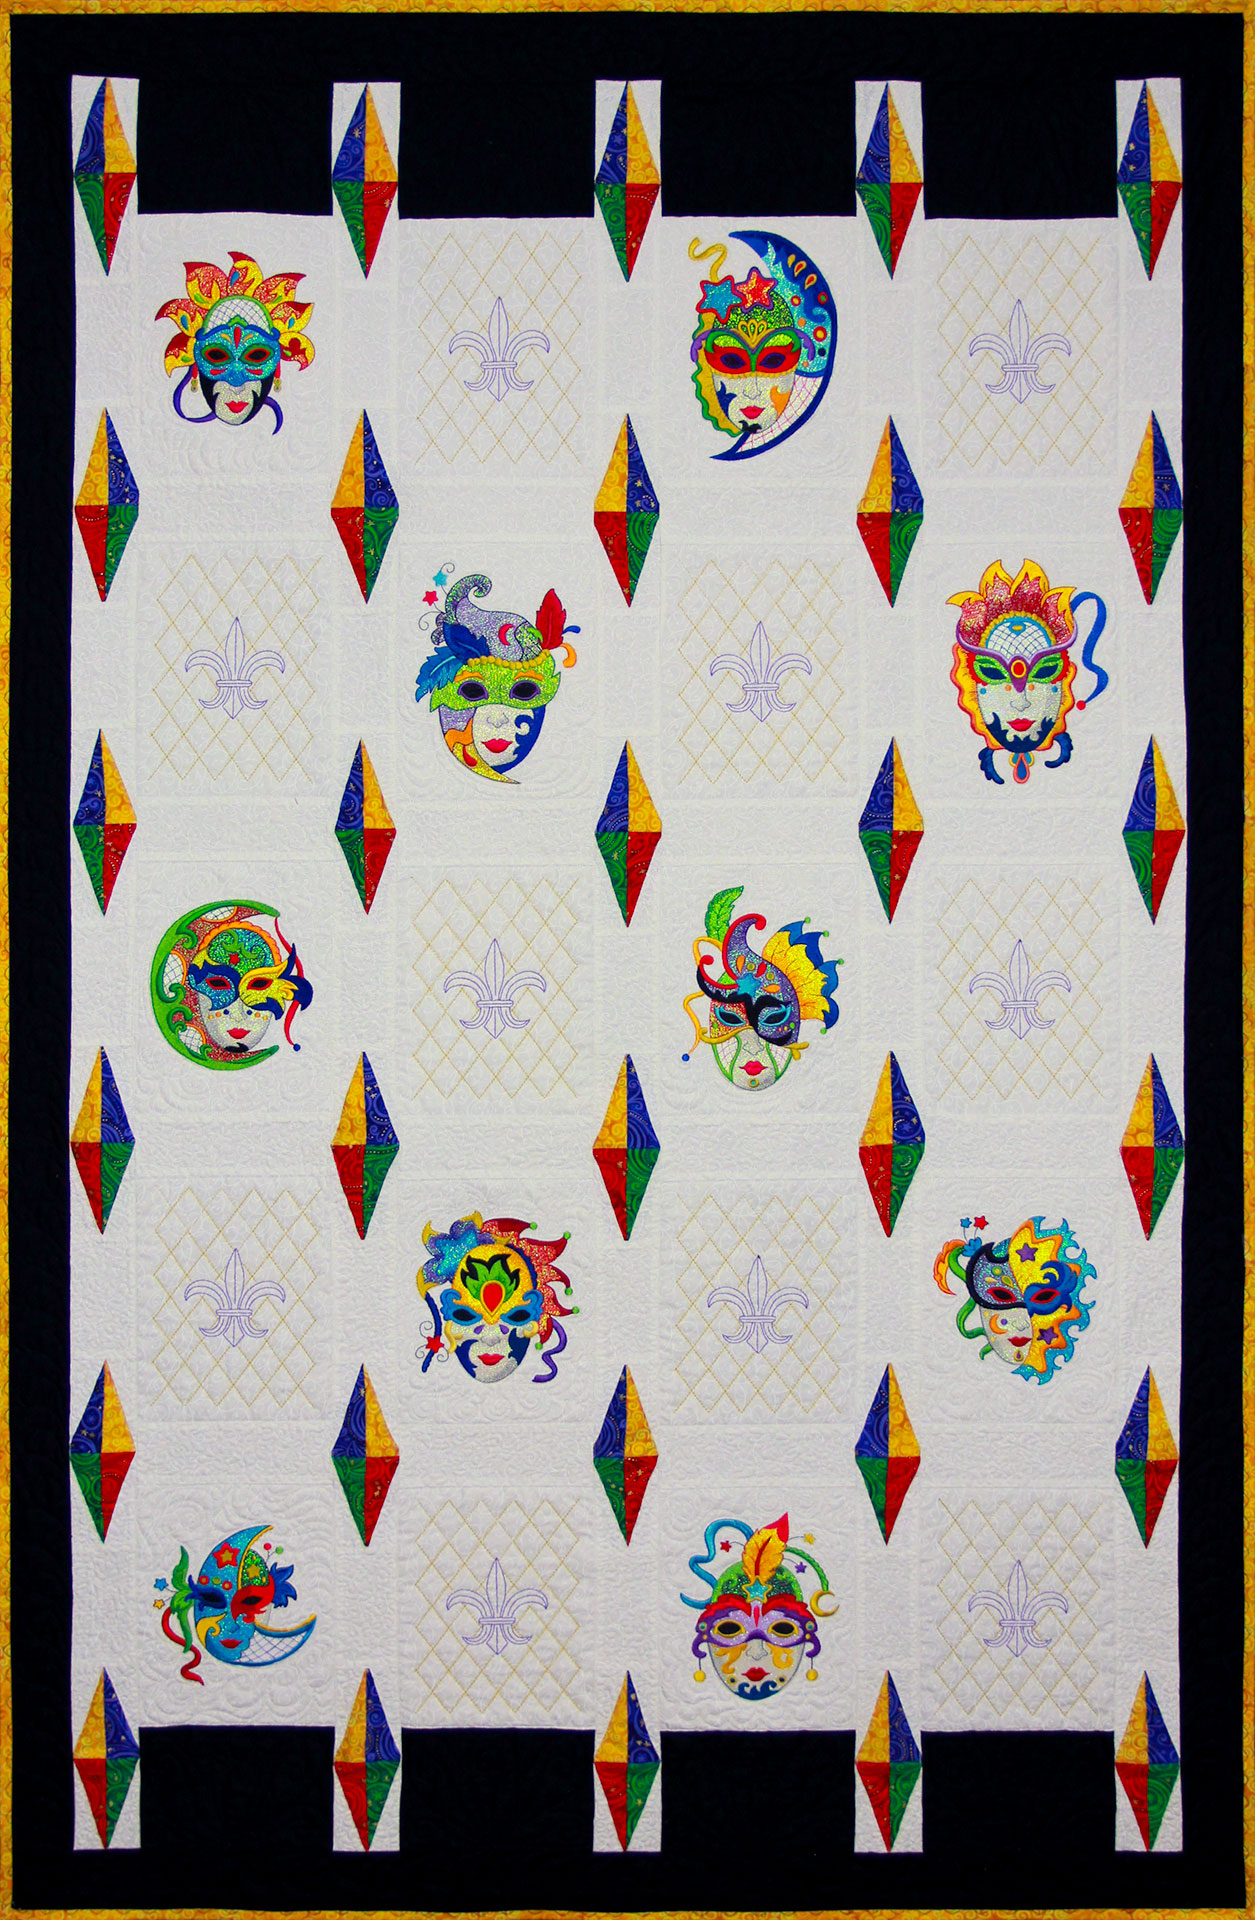 Mardi Gras Quilt - PDF Pattern for quilt featuring Mylar Mardi Gras embroidery design collection from Purely Gates. This pattern will work with most any embroidery design collection. Finished size is 34.5